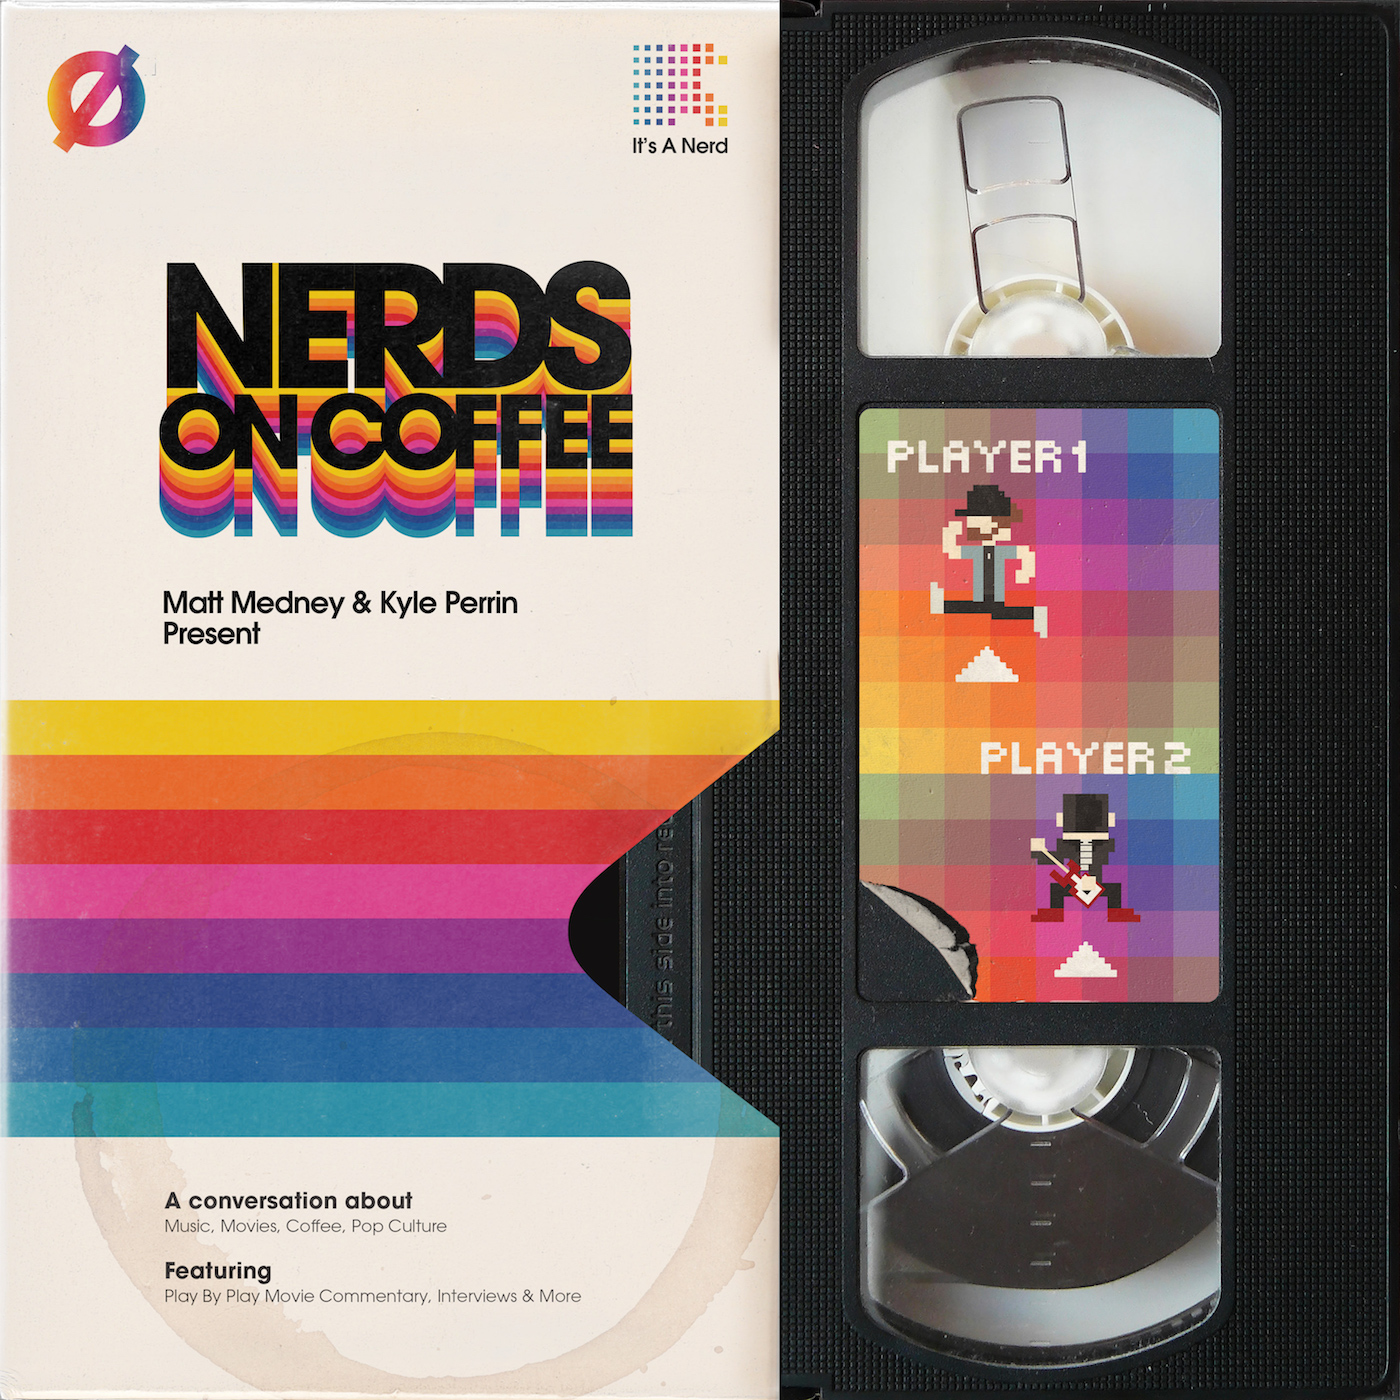 Nerds on Coffee